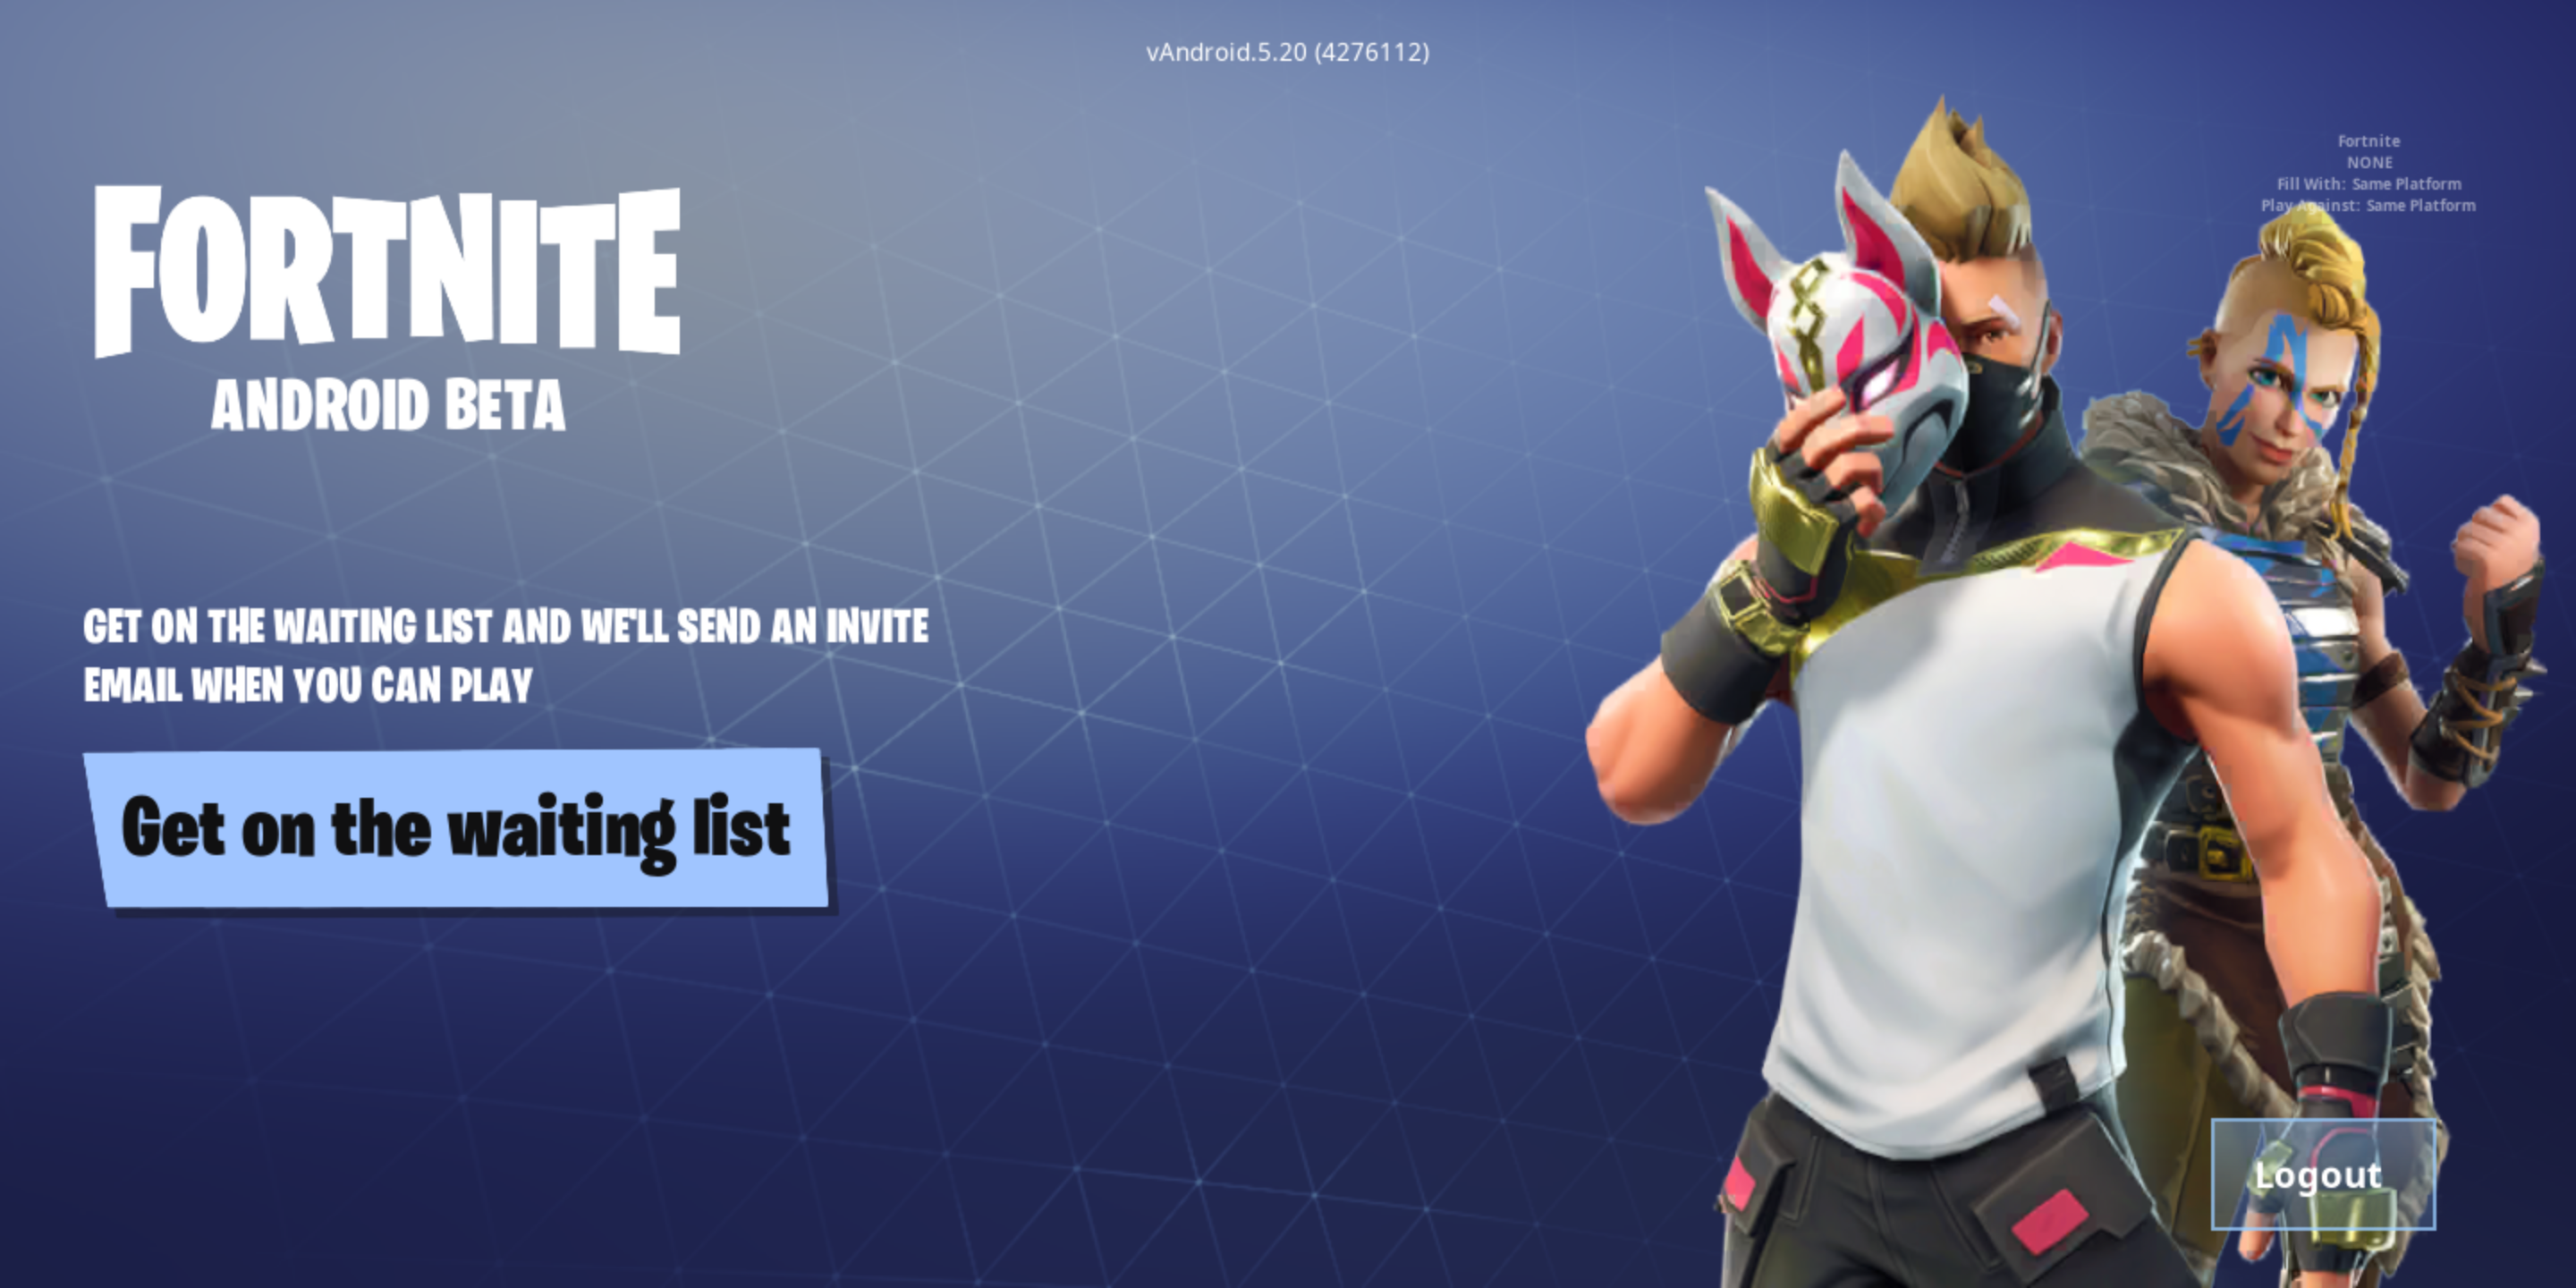 Fortnite for Android now works on non-Samsung devices, but